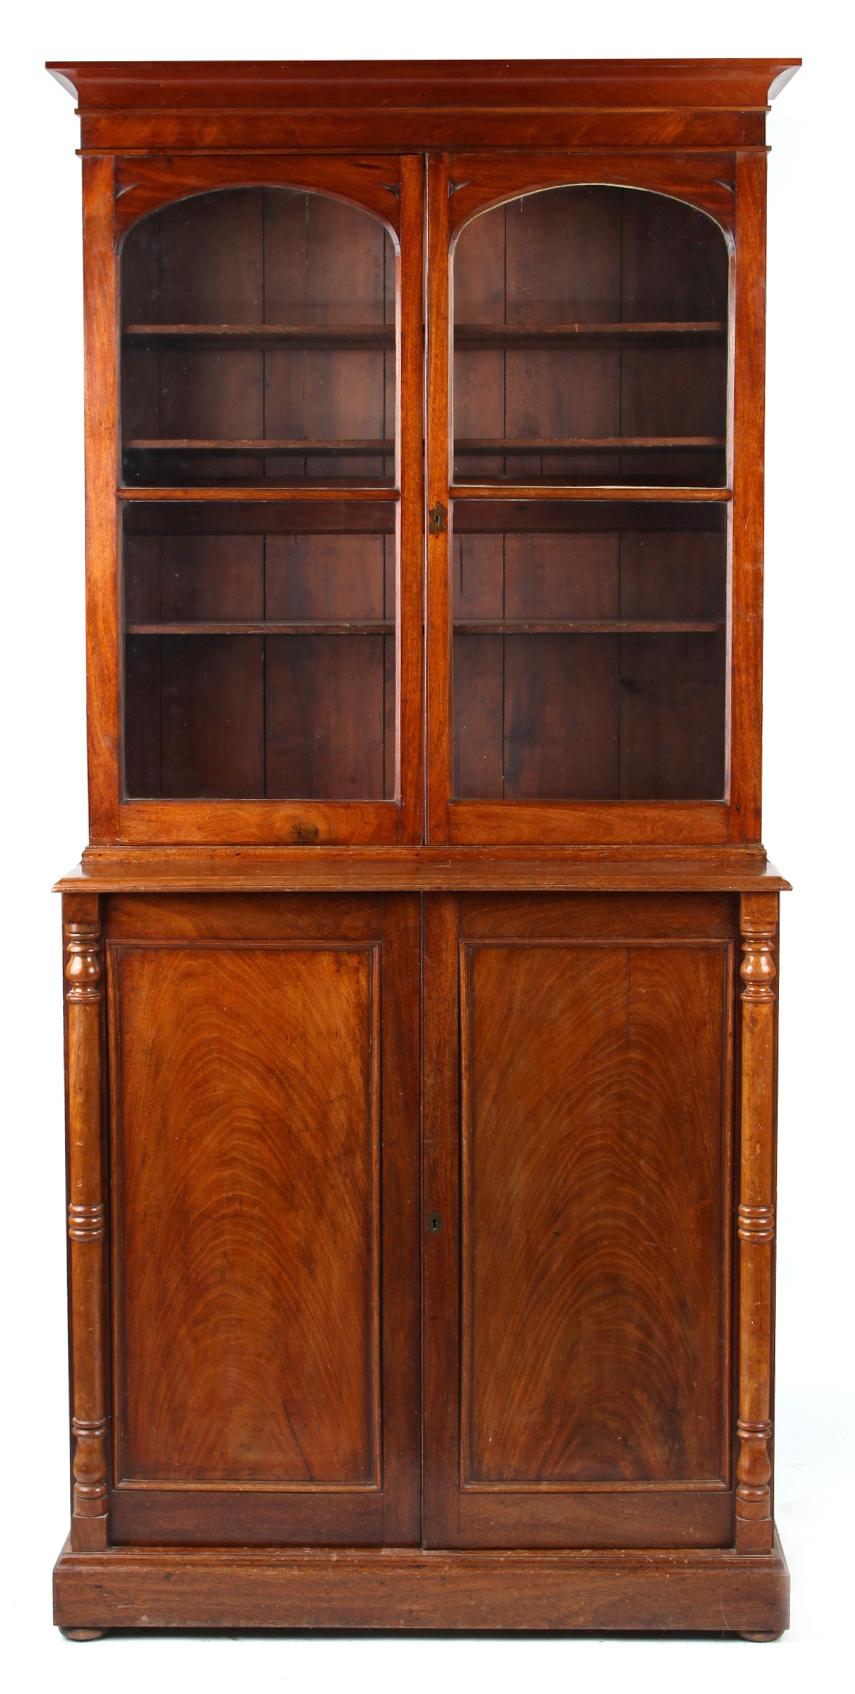 Lot 199 - Property of a deceased estate - a Victorian mahogany chiffonier bookcase with glazed upper